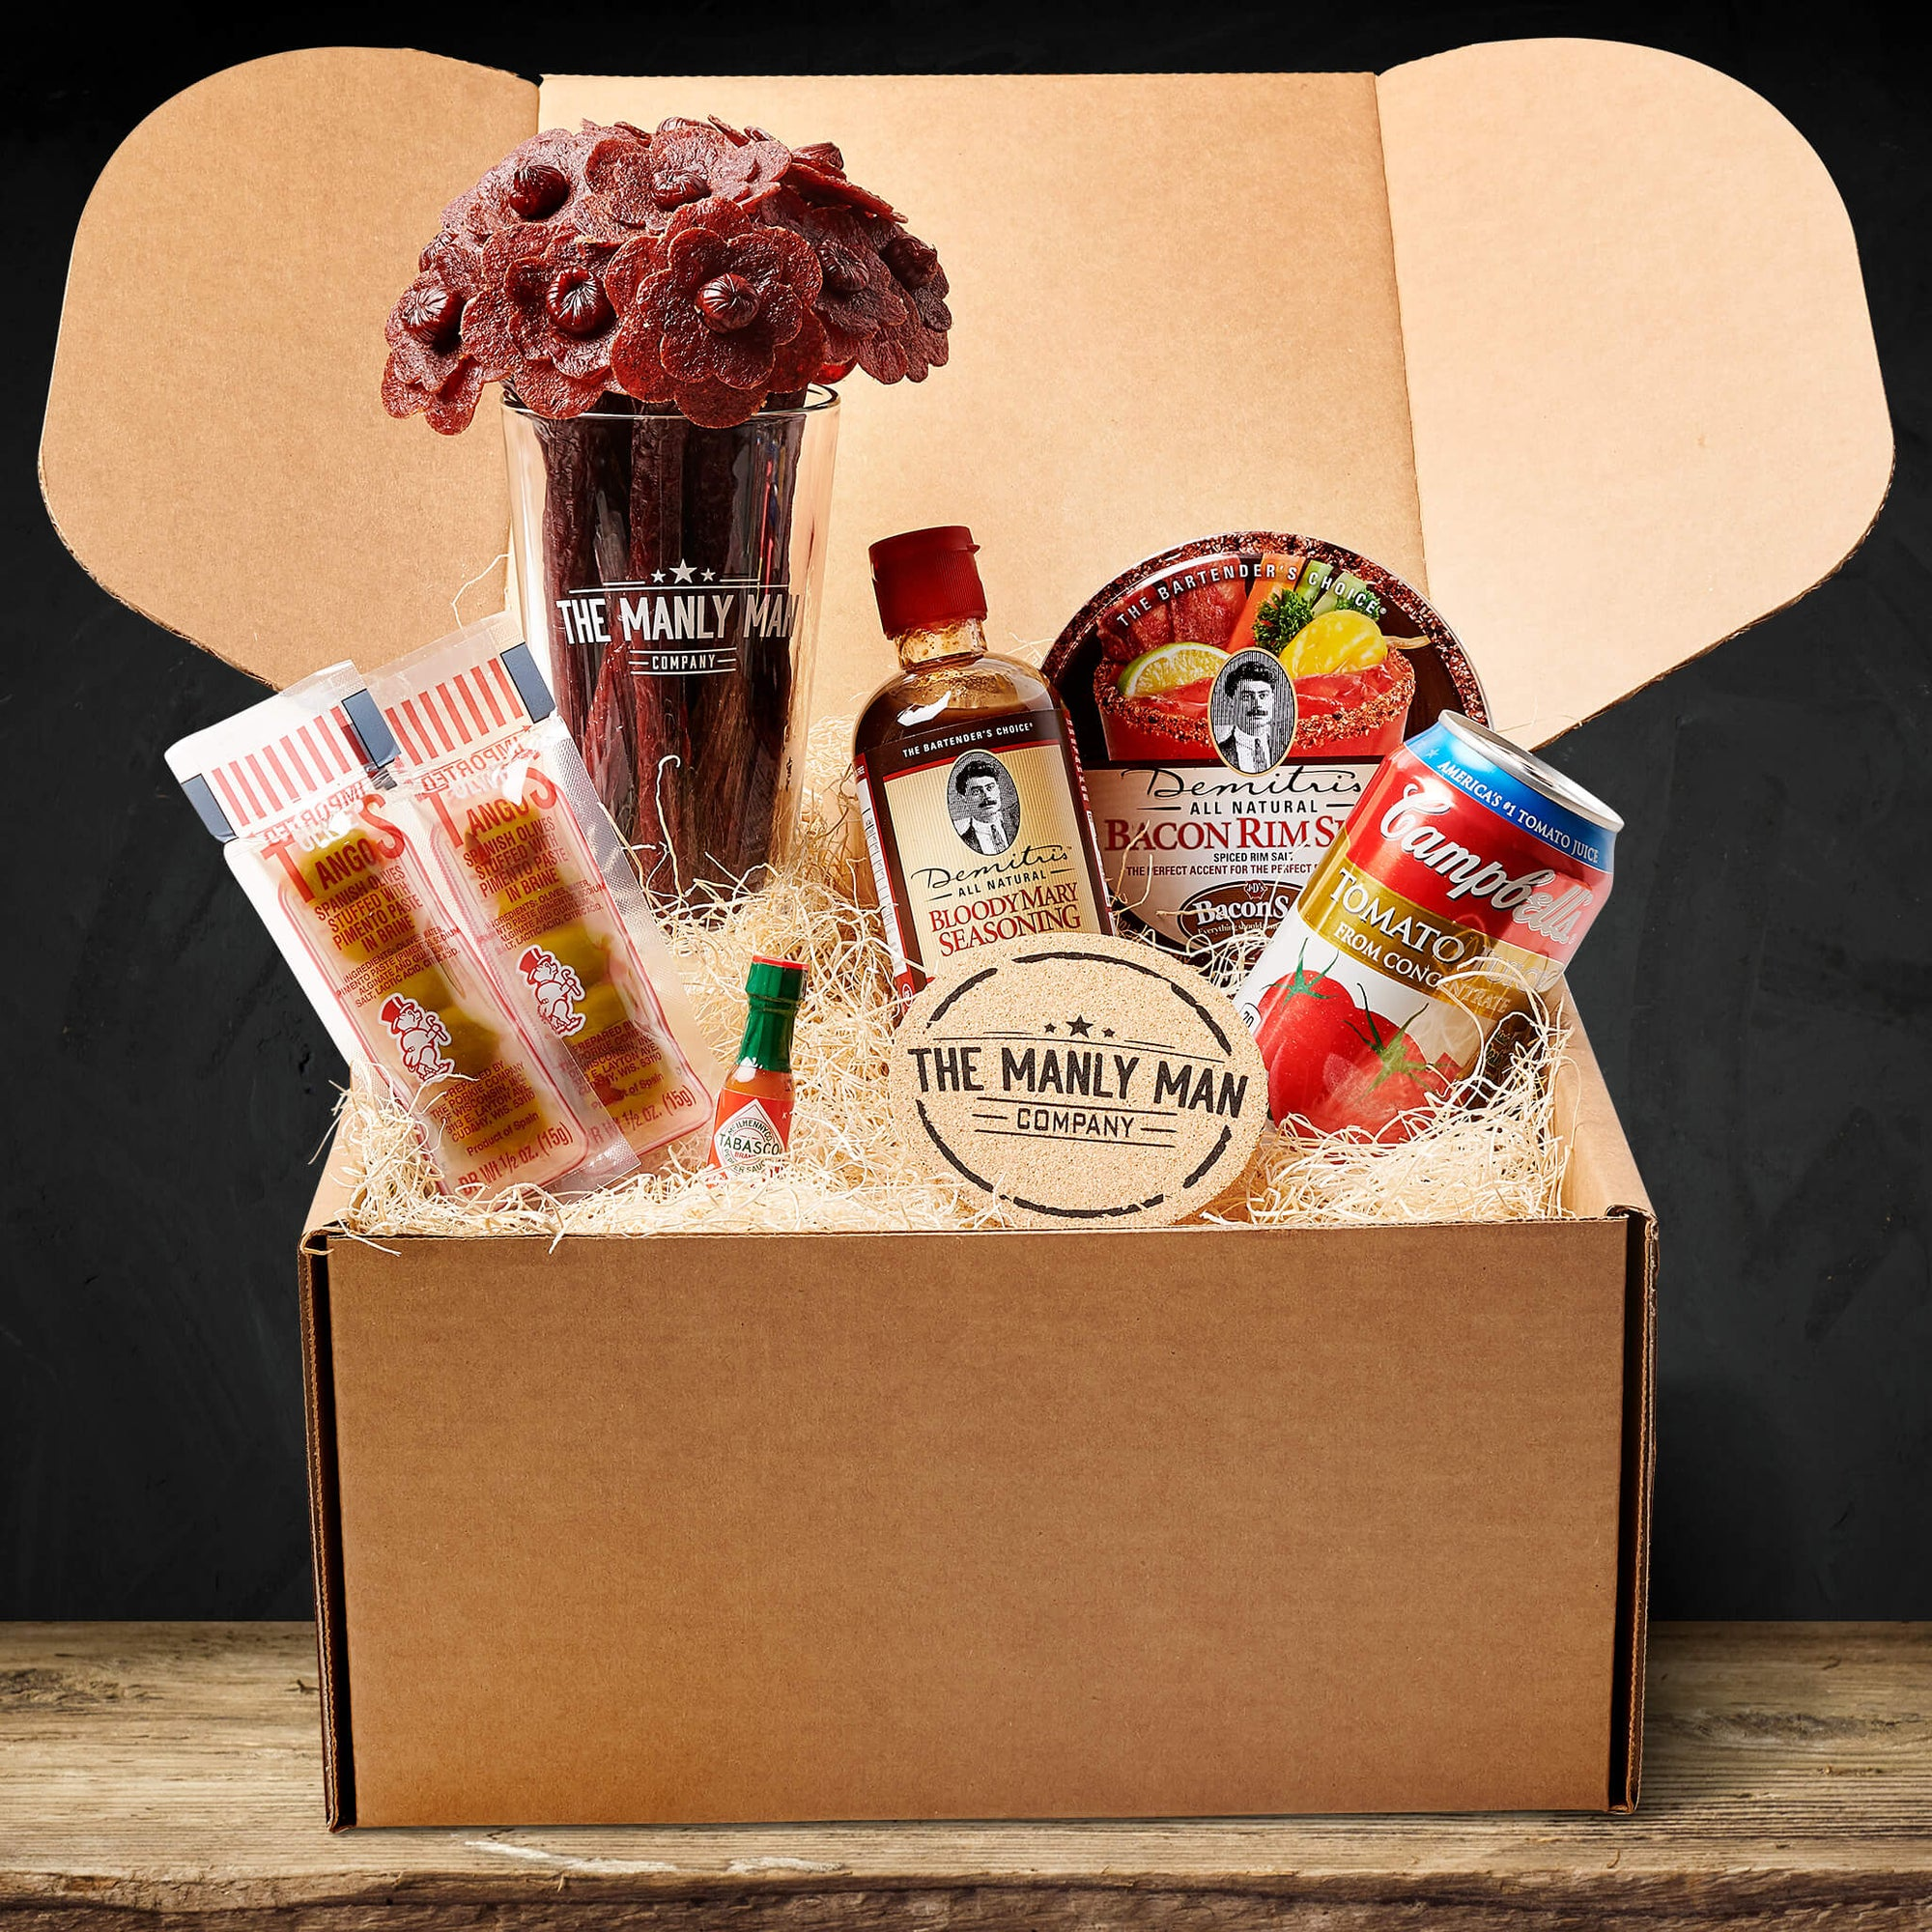 Bloody Mary kit on wood table and in front of black background, delivered as a gift for men